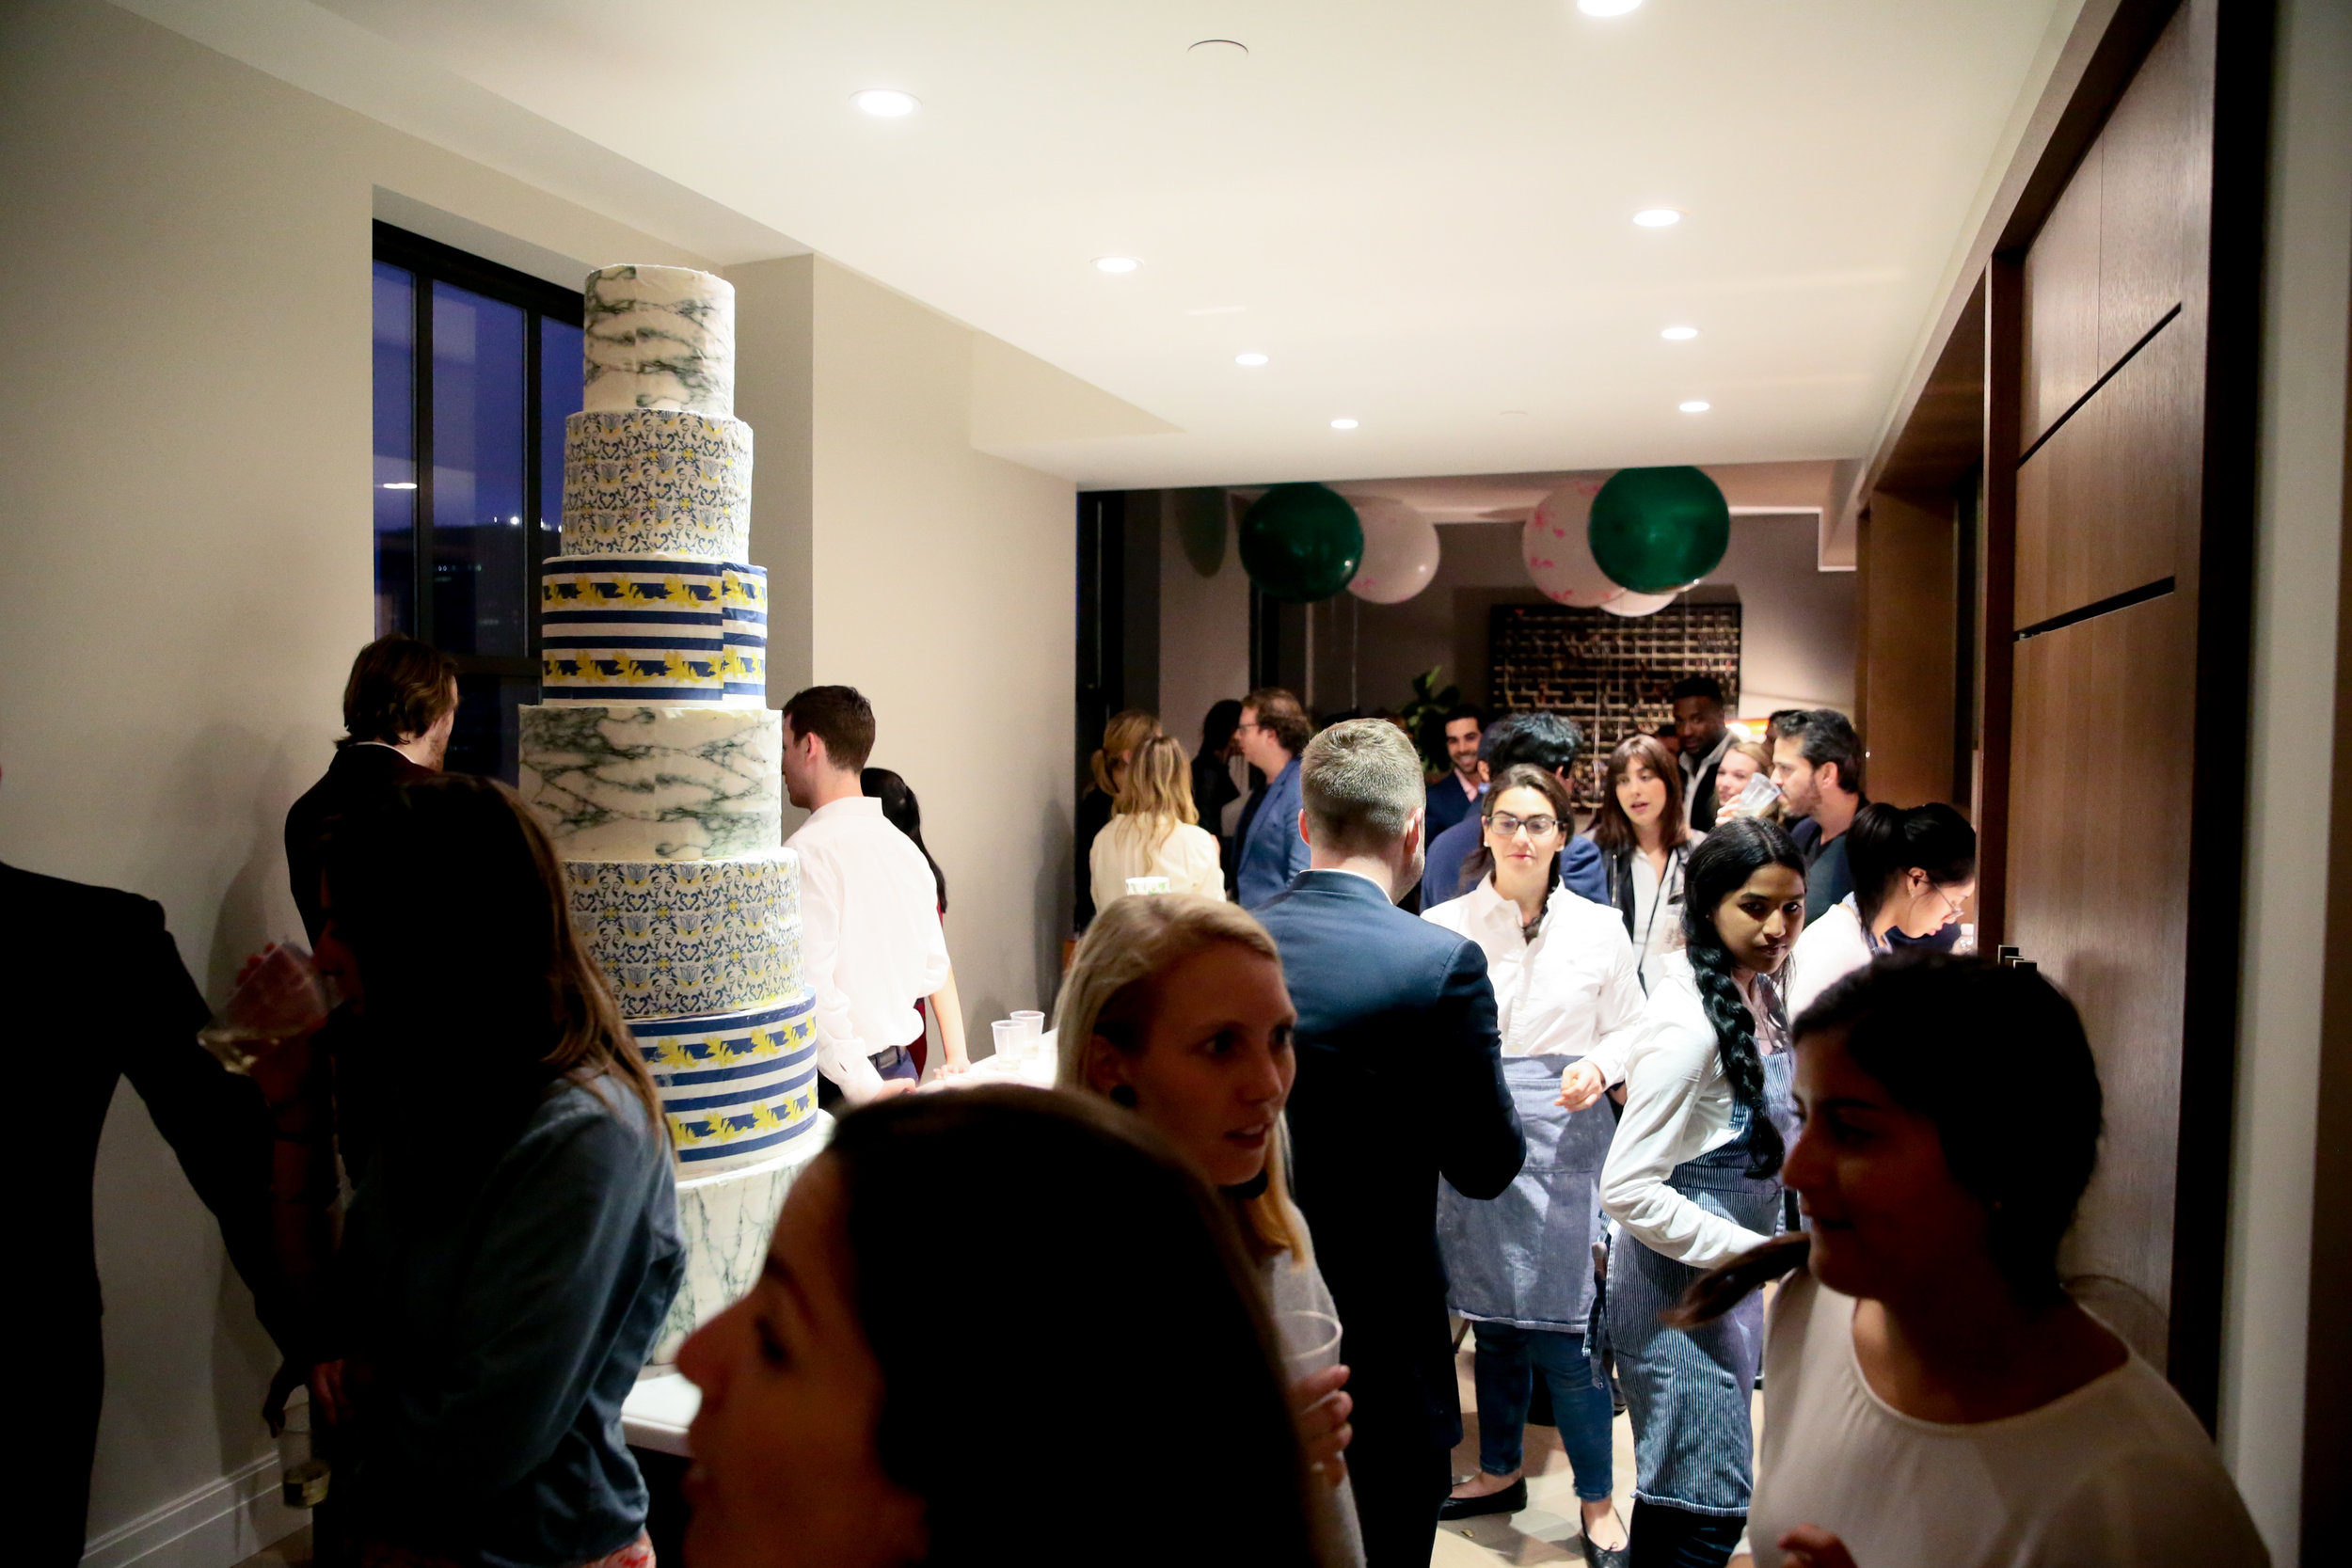 Victory Club members enjoying the view of a 6ft cake covered with Chefanie sheets